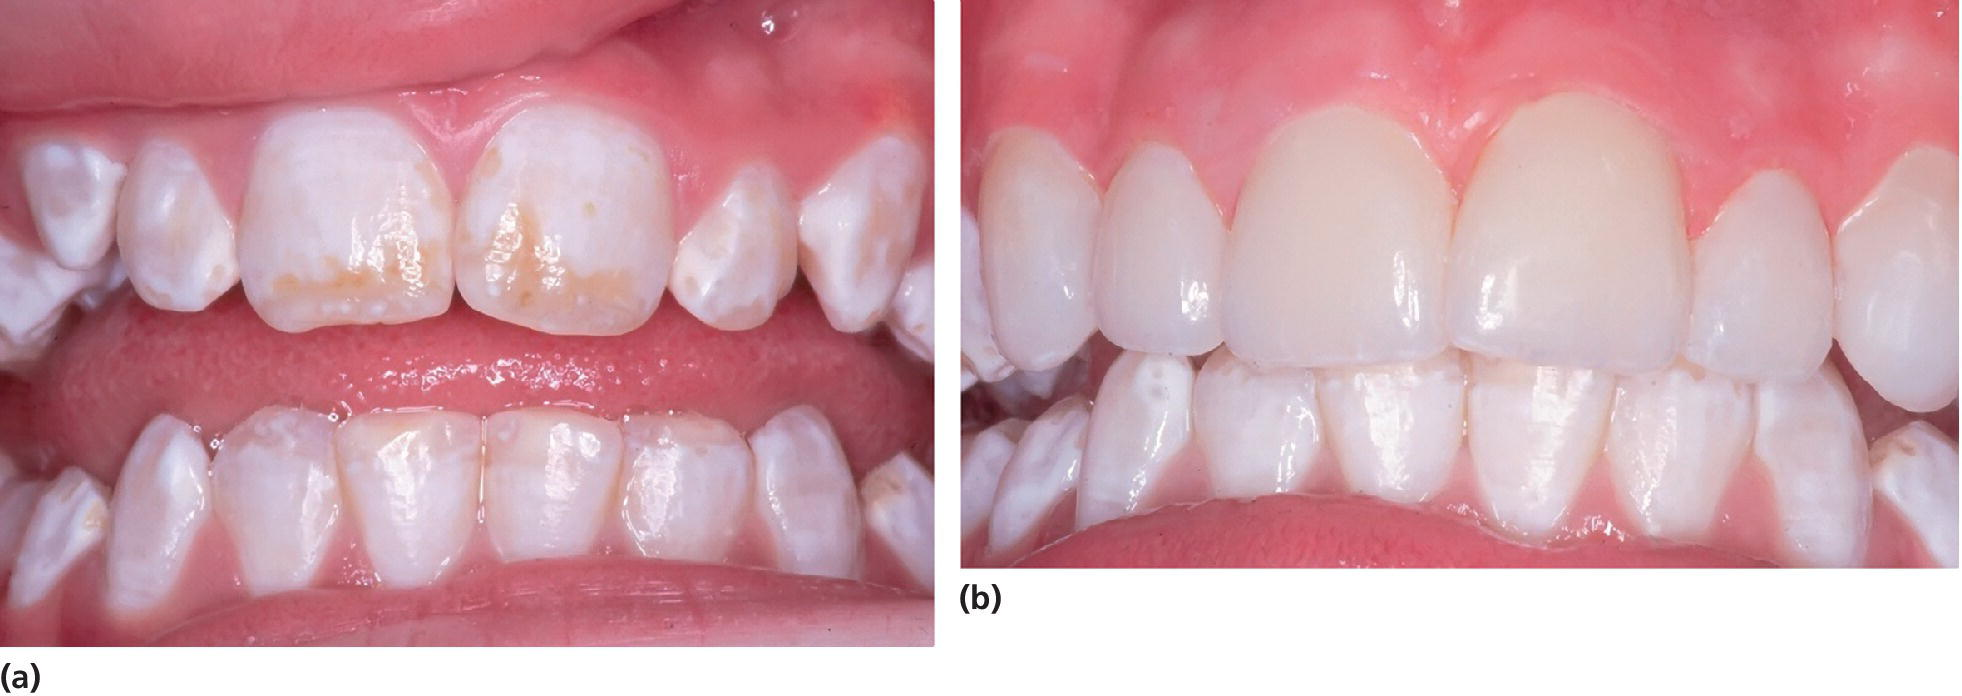 Photos of teeth and gums of 13-year-old girl, displaying moderate dental fluorosis (left) and porcelain veneers attached to the upper left canine to the upper right (right).